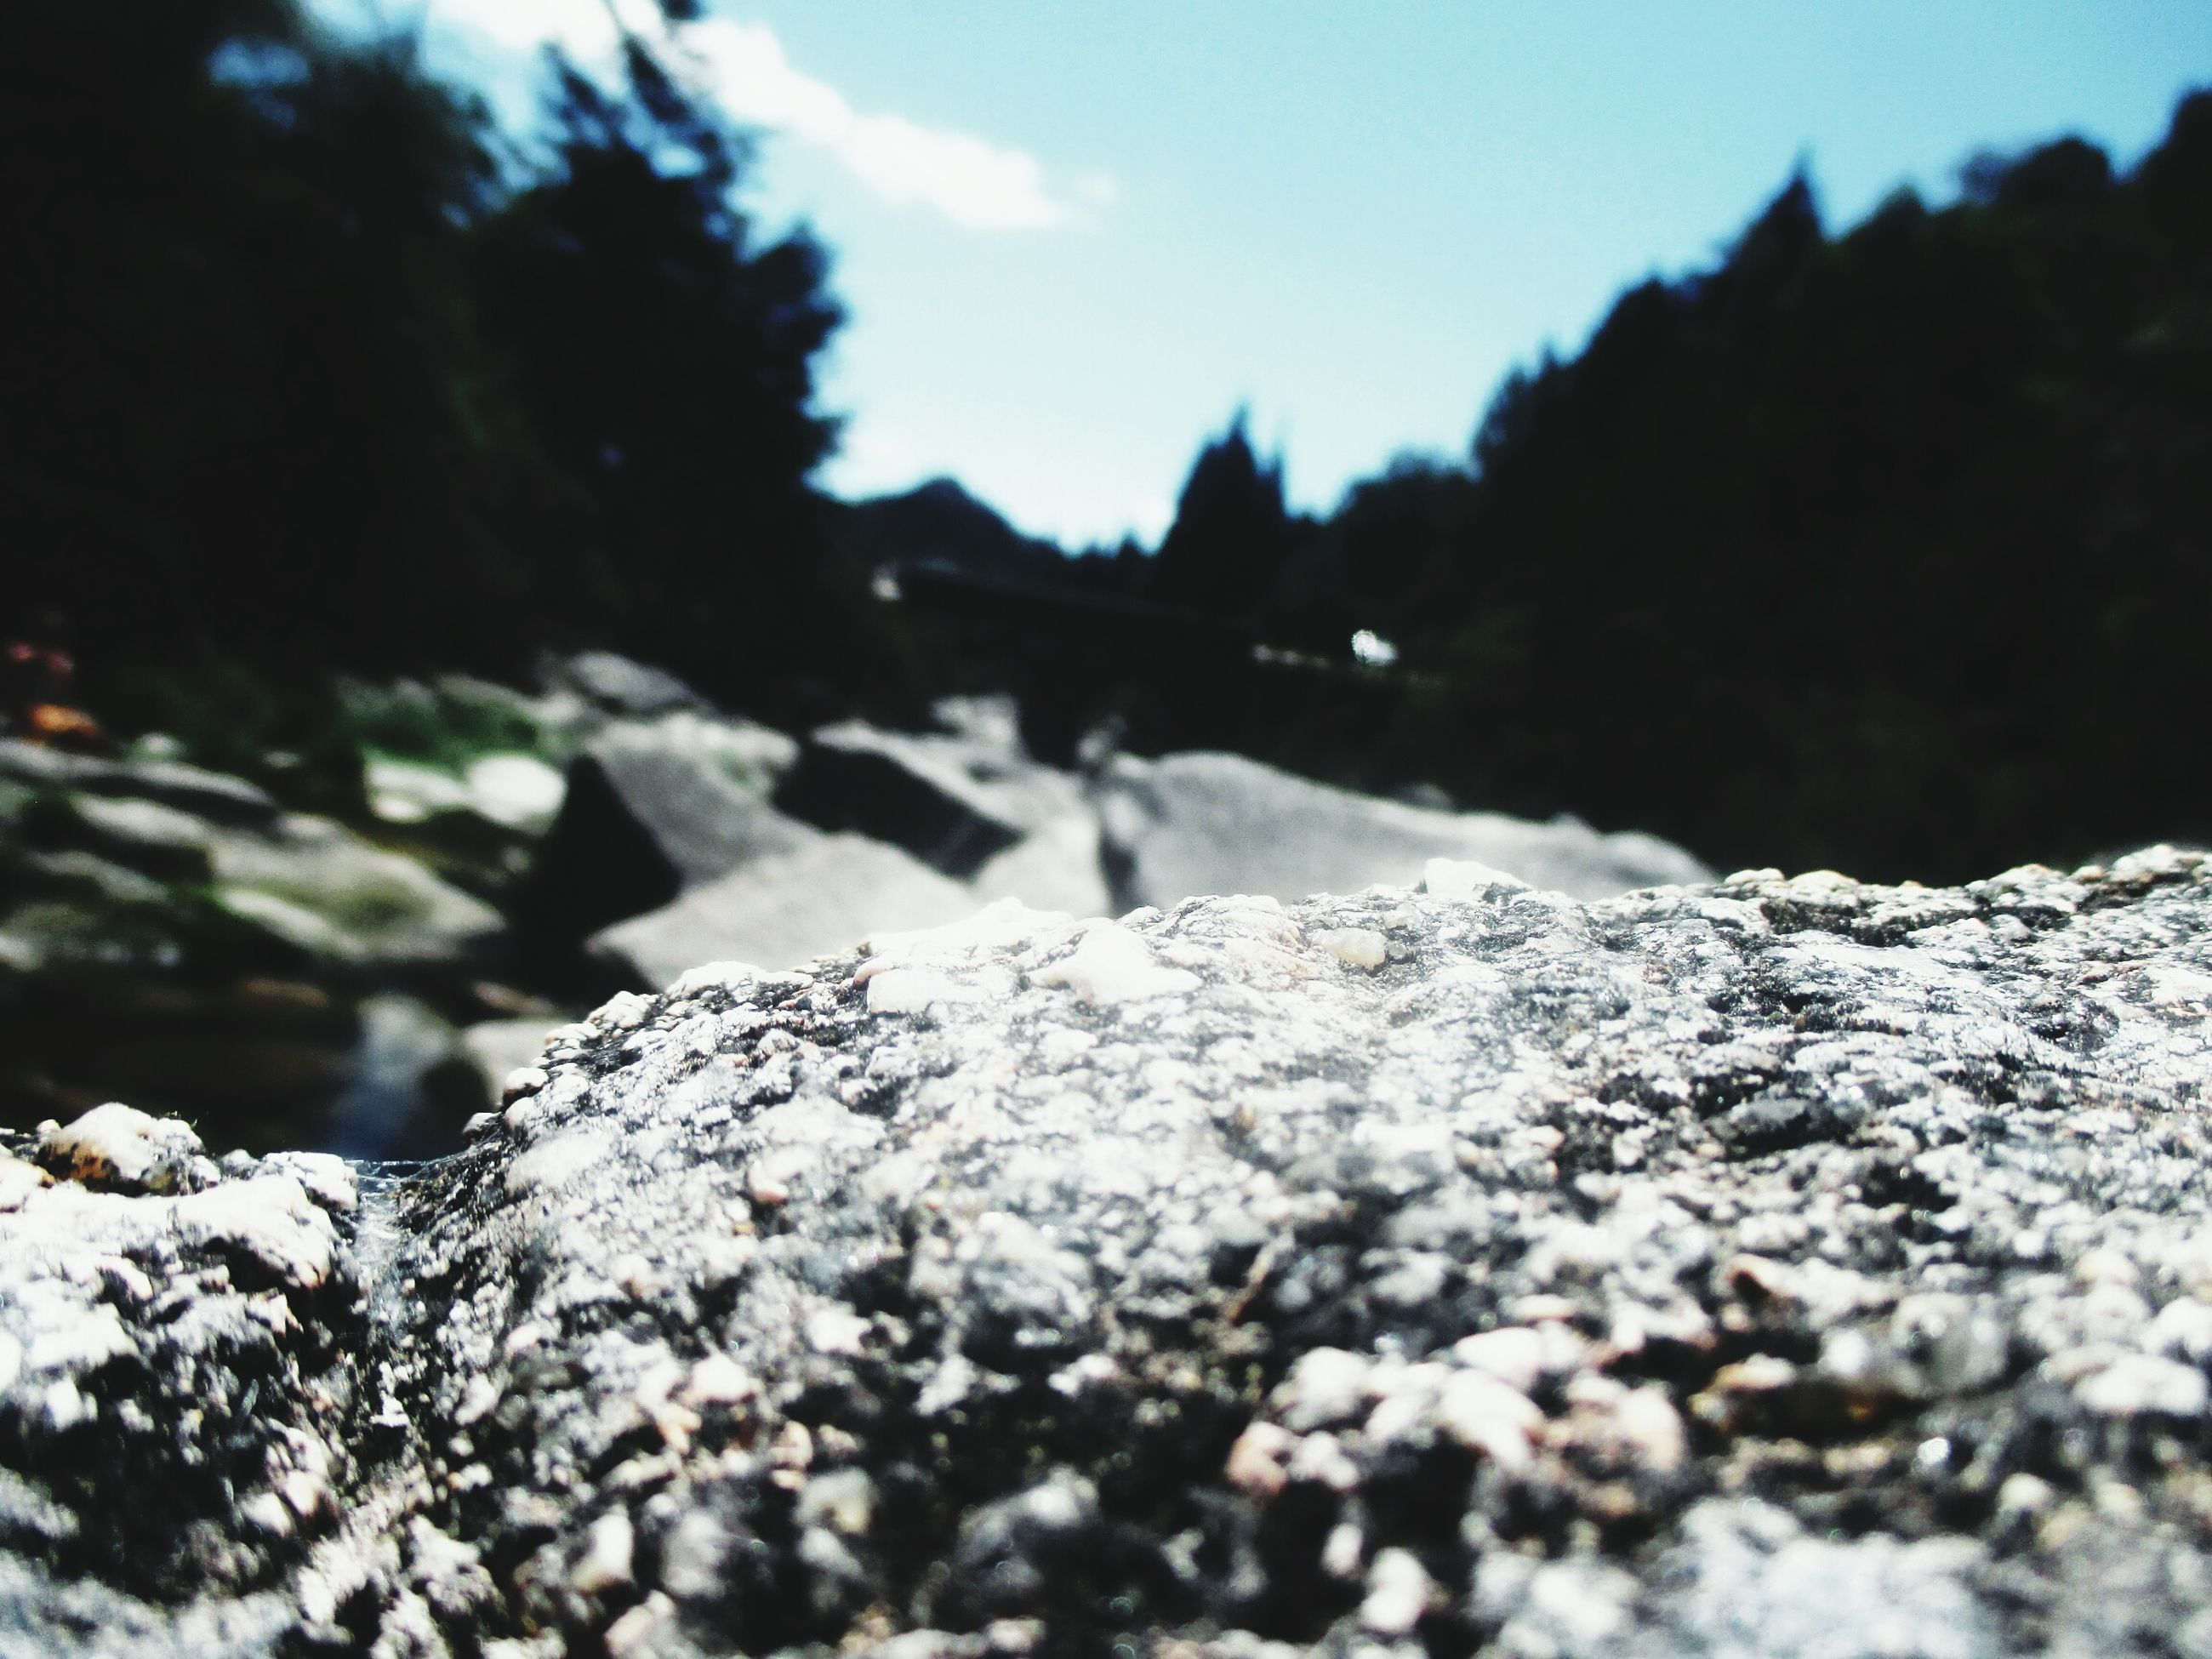 nature, rock - object, selective focus, outdoors, day, mountain, beauty in nature, no people, tranquility, close-up, water, sky, scenics, snow, pebble beach